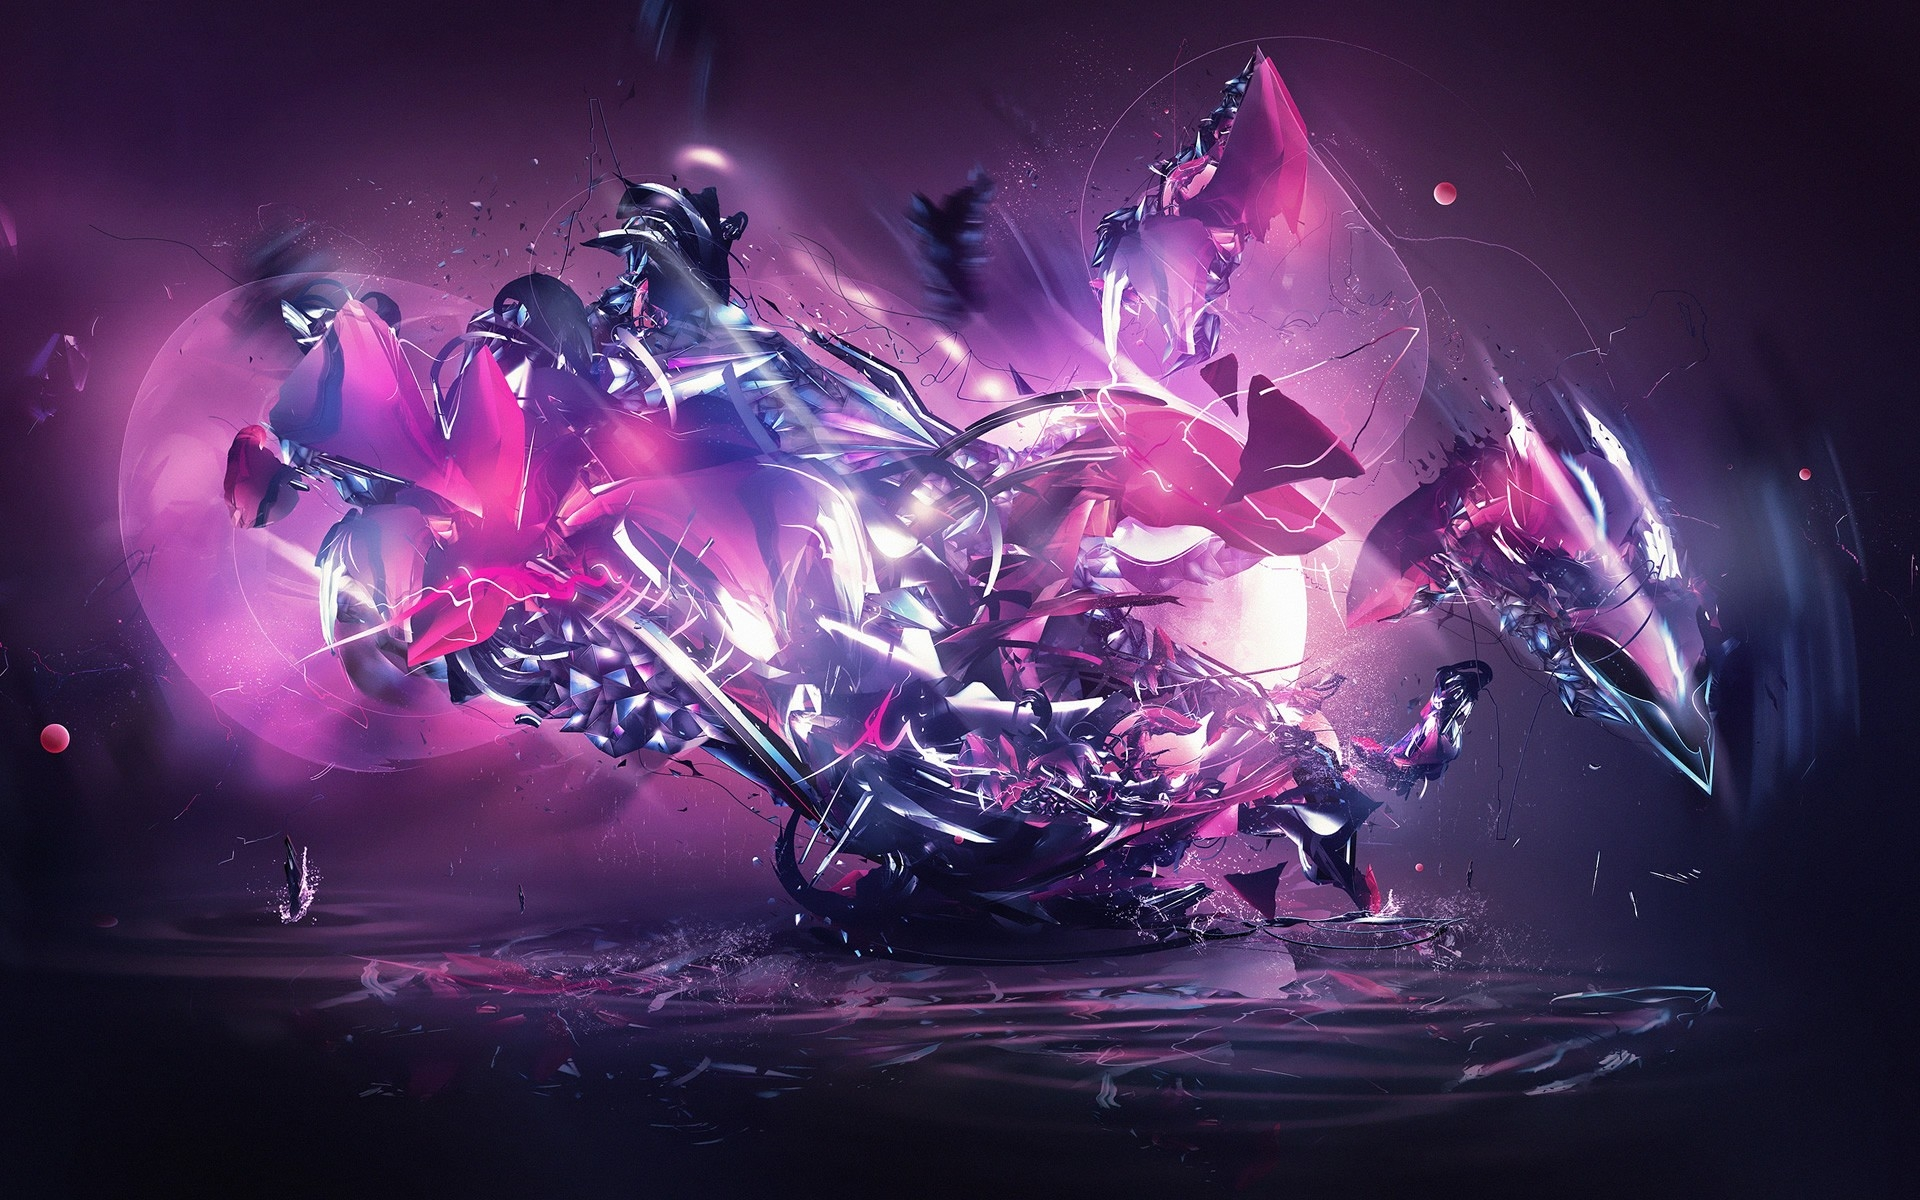 Dragon Explosion Pink Abstract wallpapers Dragon Explosion Pink 1920x1200